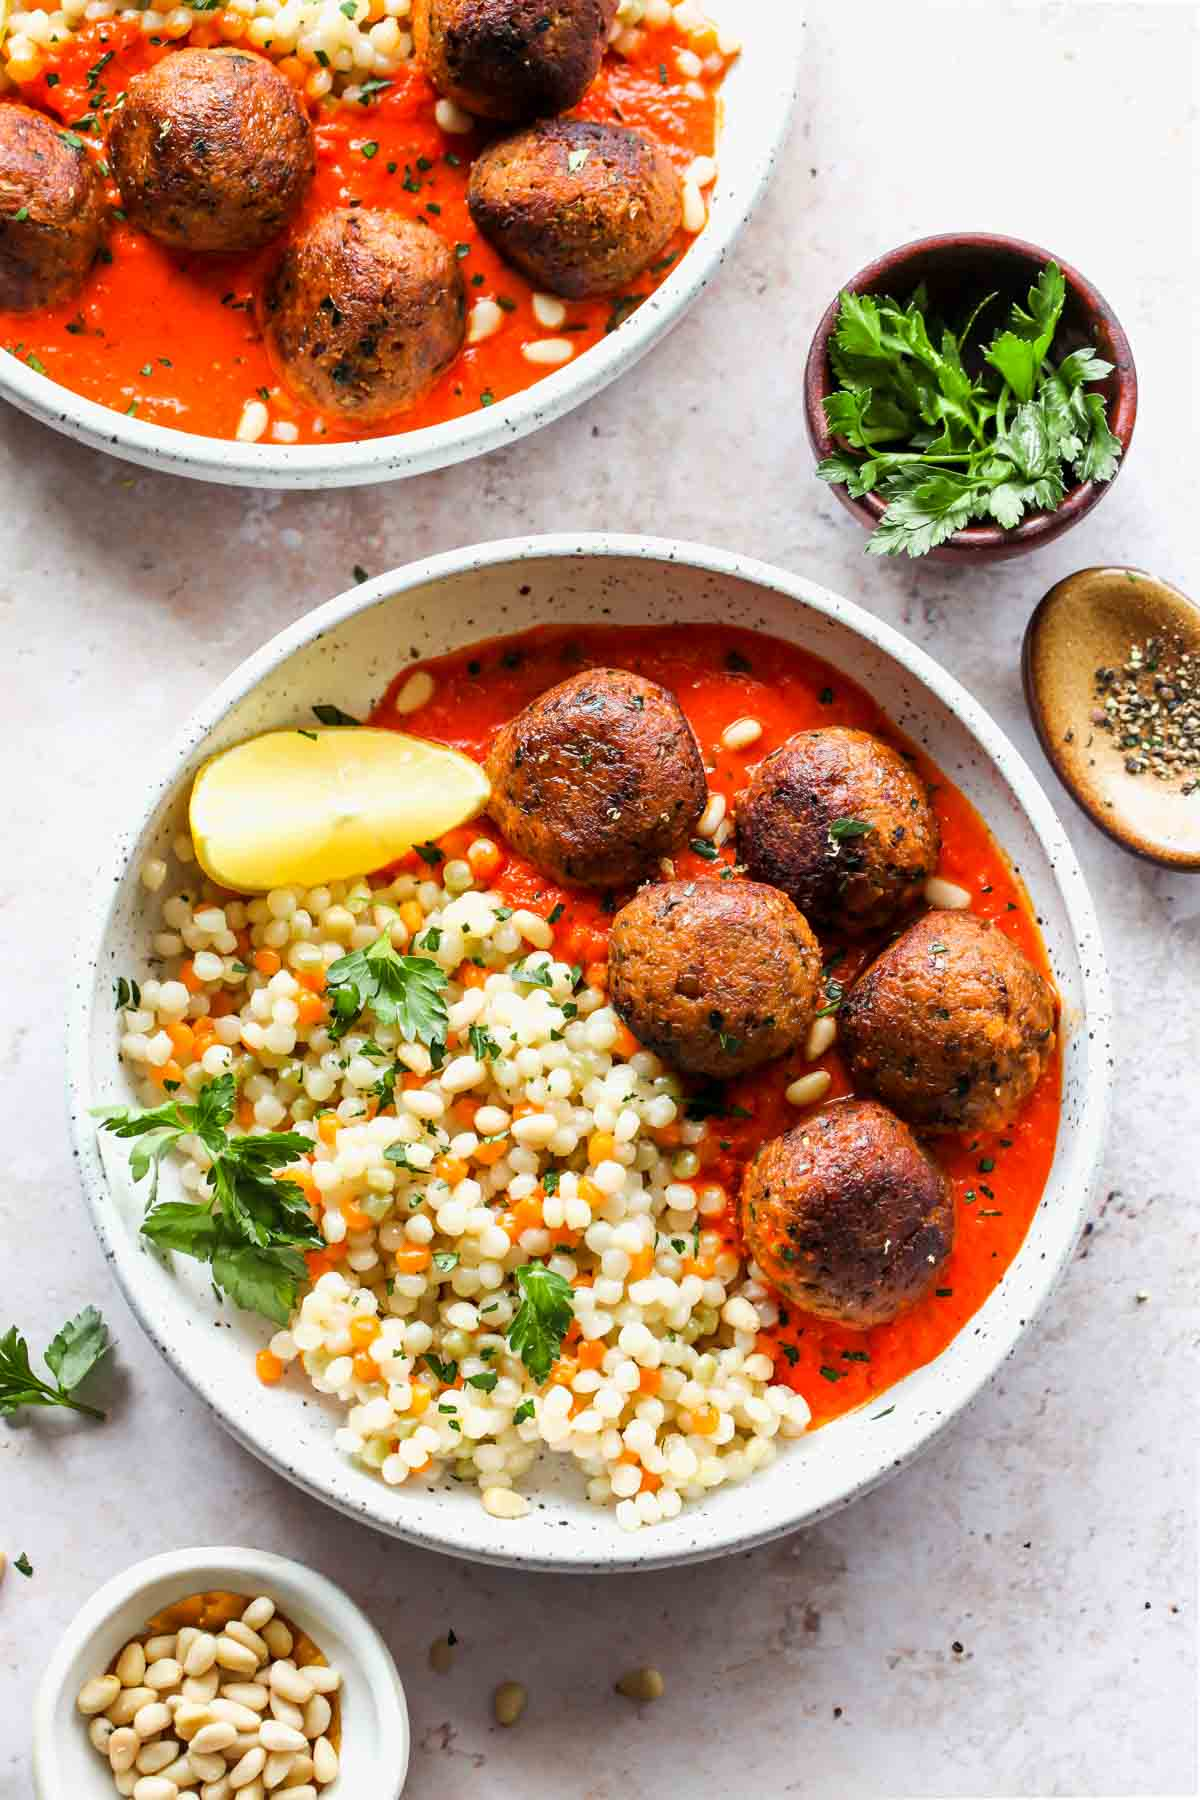 Moroccan meatballs and pearl couscous in a white bowl with lemon garnish